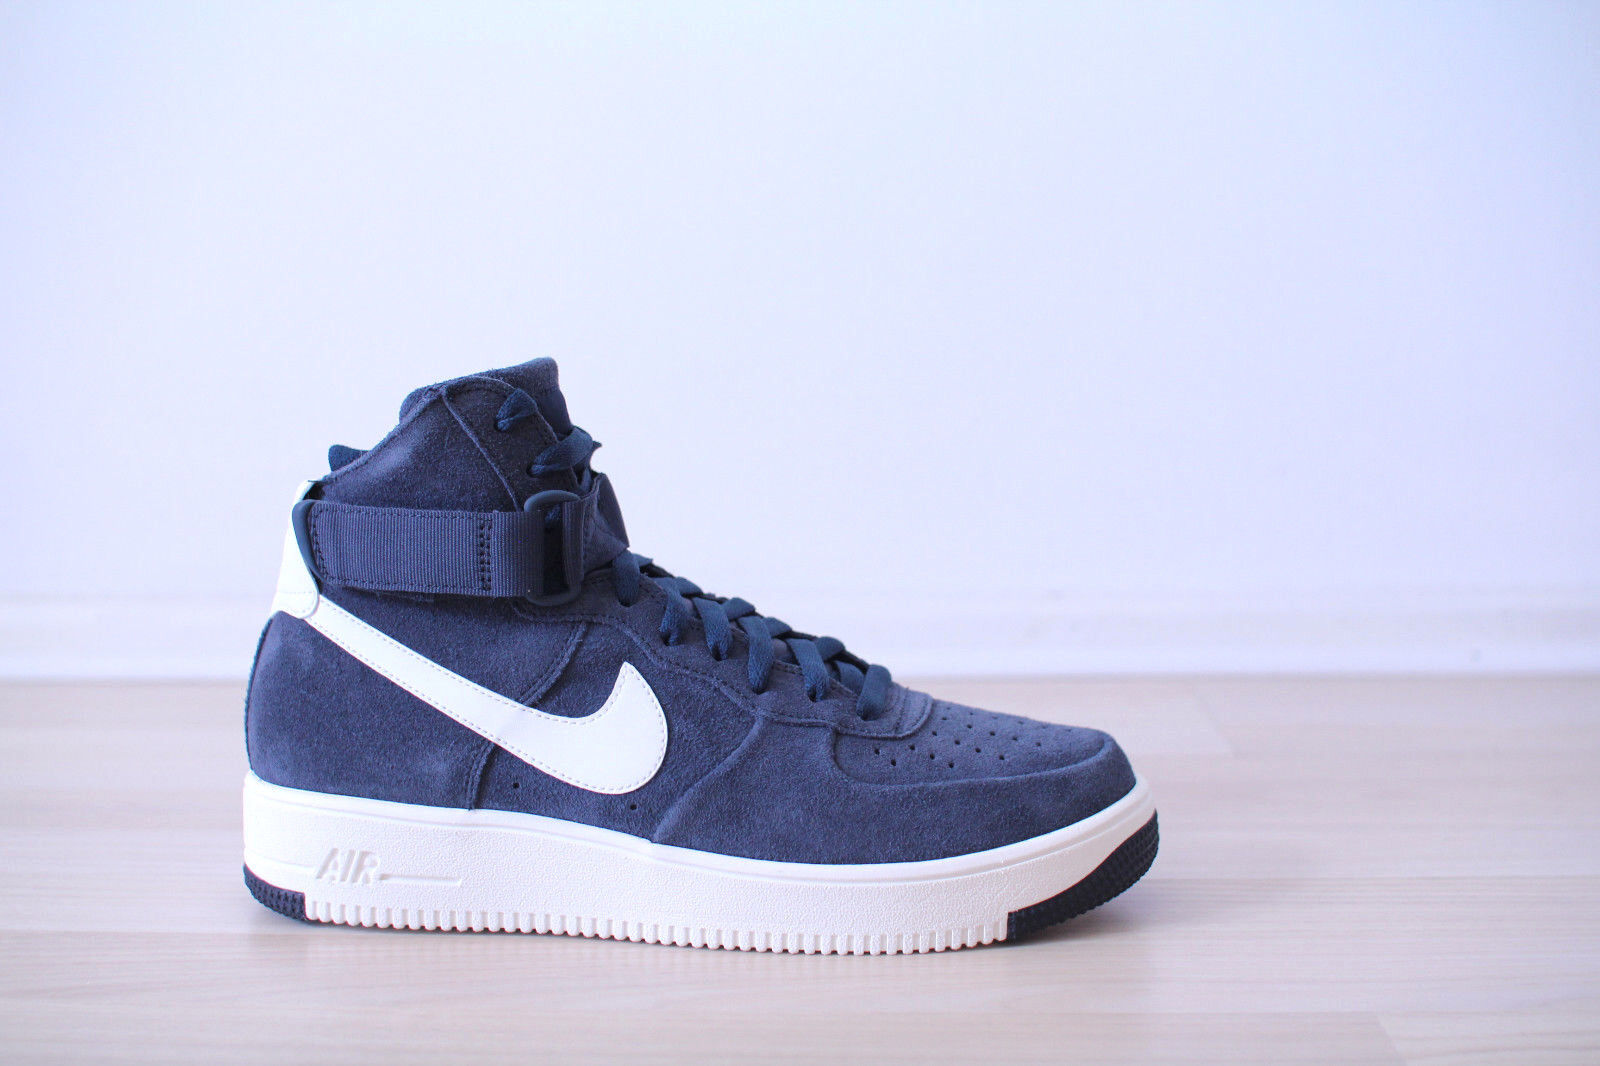 Nike Air Force 1 Ultraforce Hi bluee white Gr. 40,41,42,43,44,45,46 Jordan